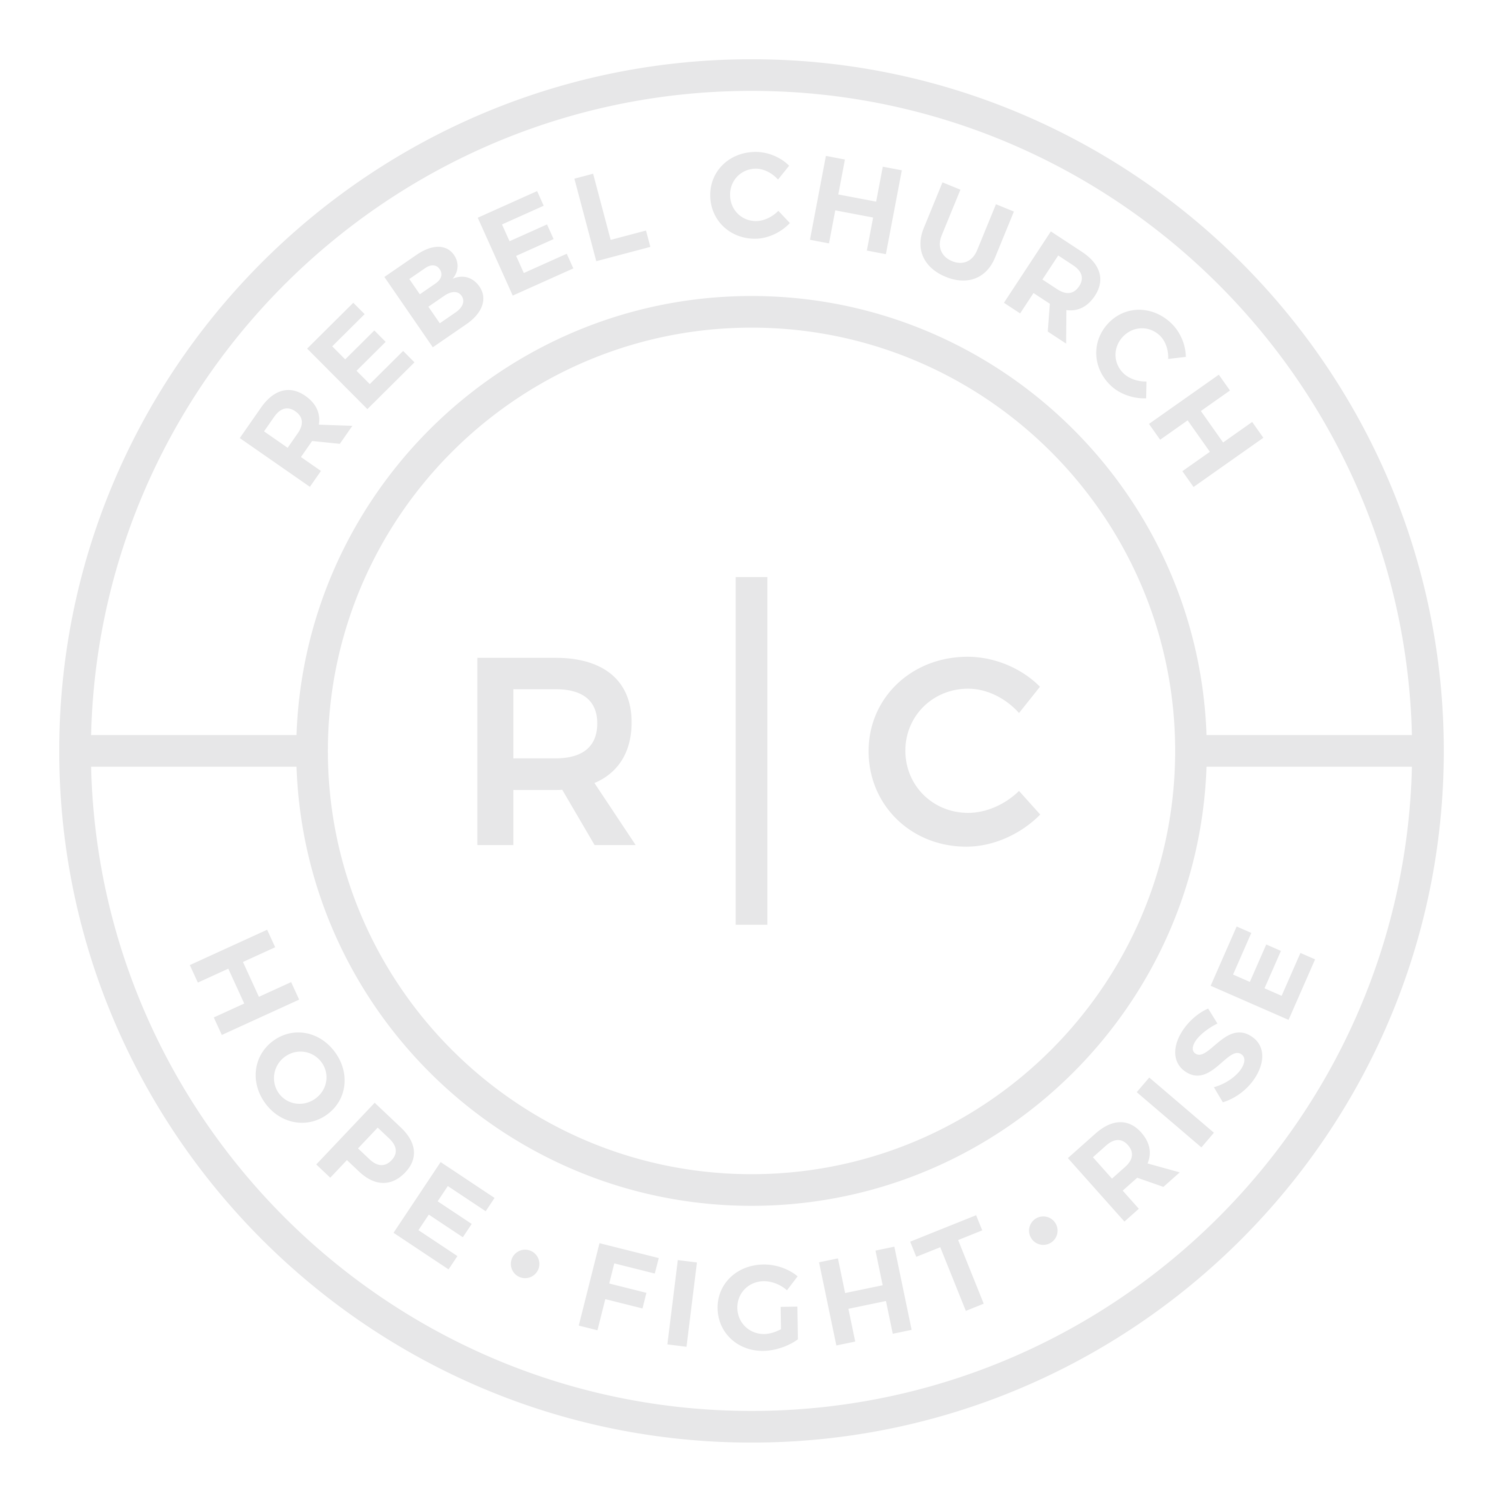 Rebel Church